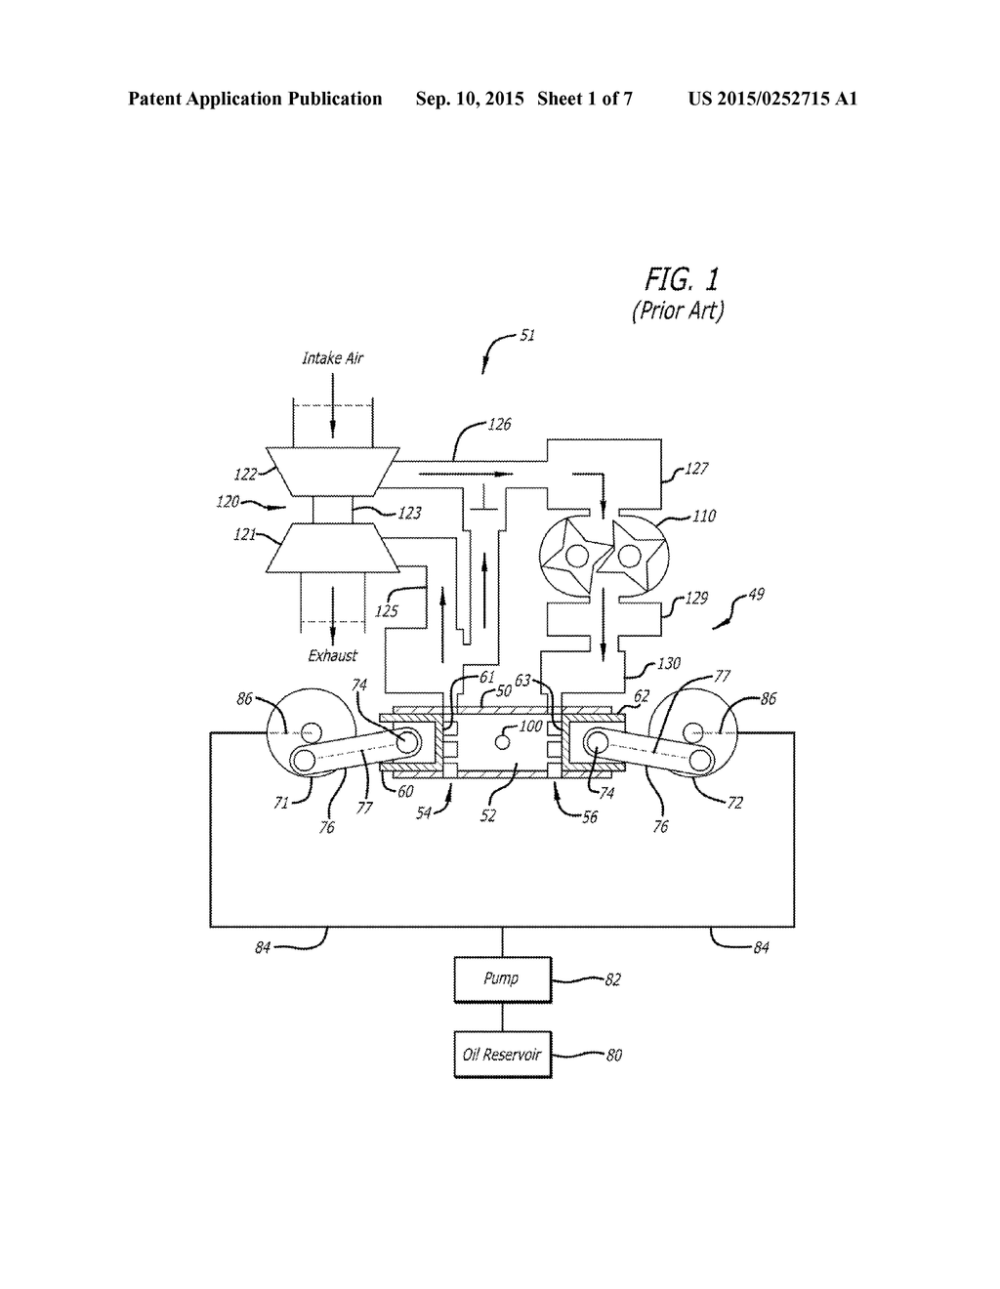 medium resolution of piston cooling configuration utilizing lubricating oil from bearing reservoir in an opposed piston engine diagram schematic and image 02